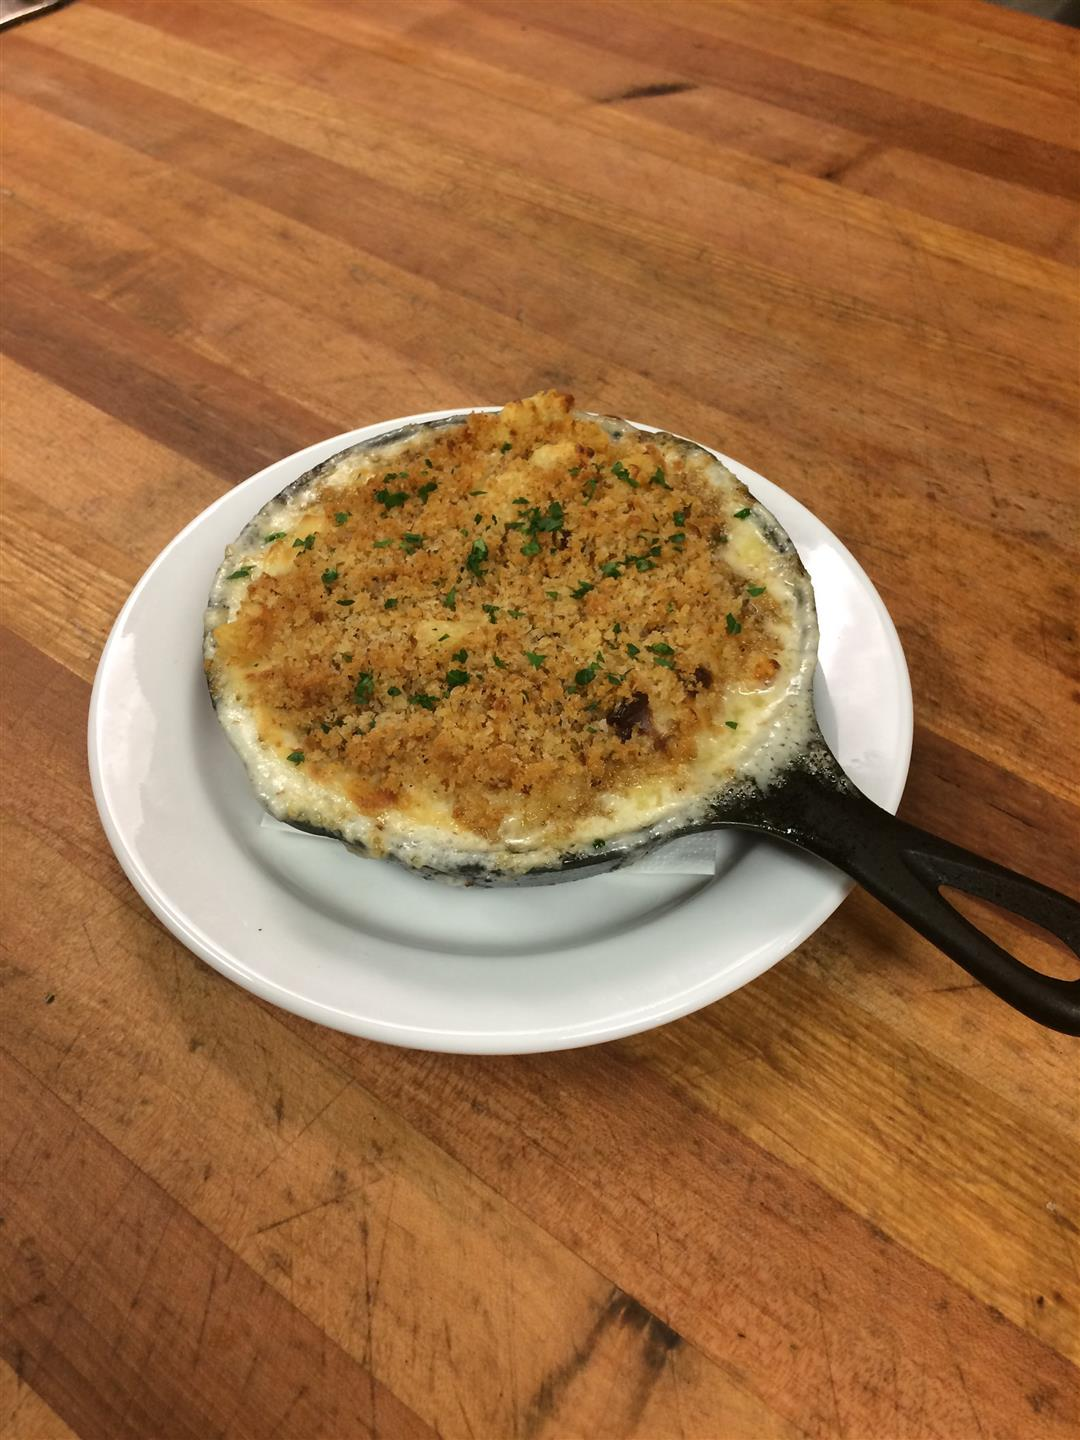 Baked Mac and cheese topped with breadcrumbs in a skillet